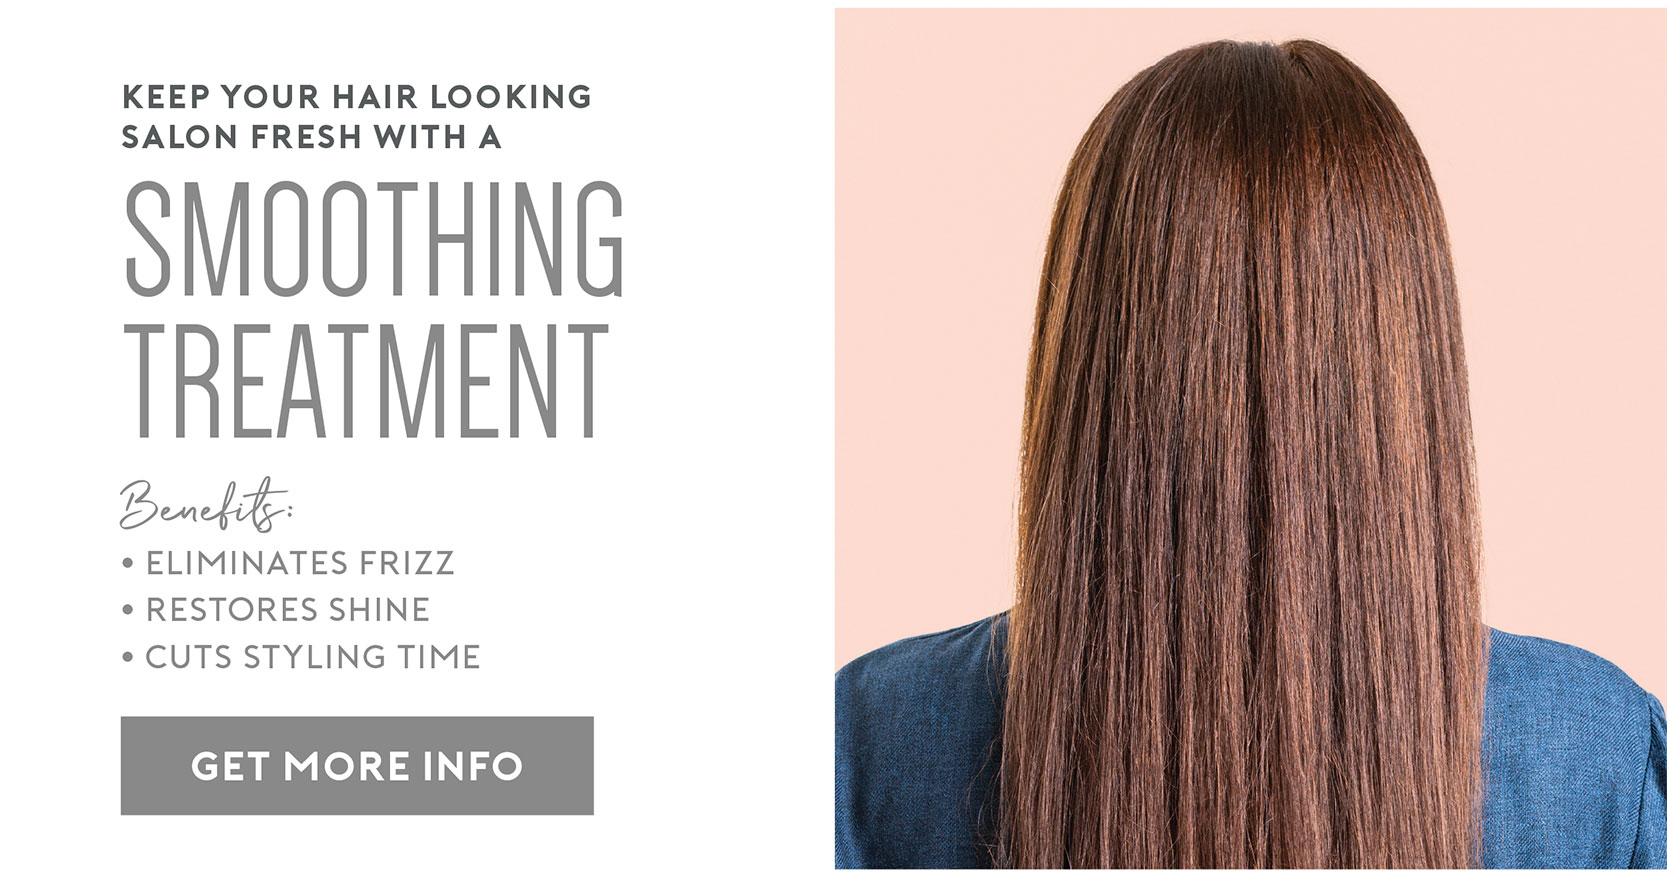 Keep your hair looking salon fresh with a Smoothing Treatment – Eliminates Frizz | Restores Shine | Cuts Styling Time